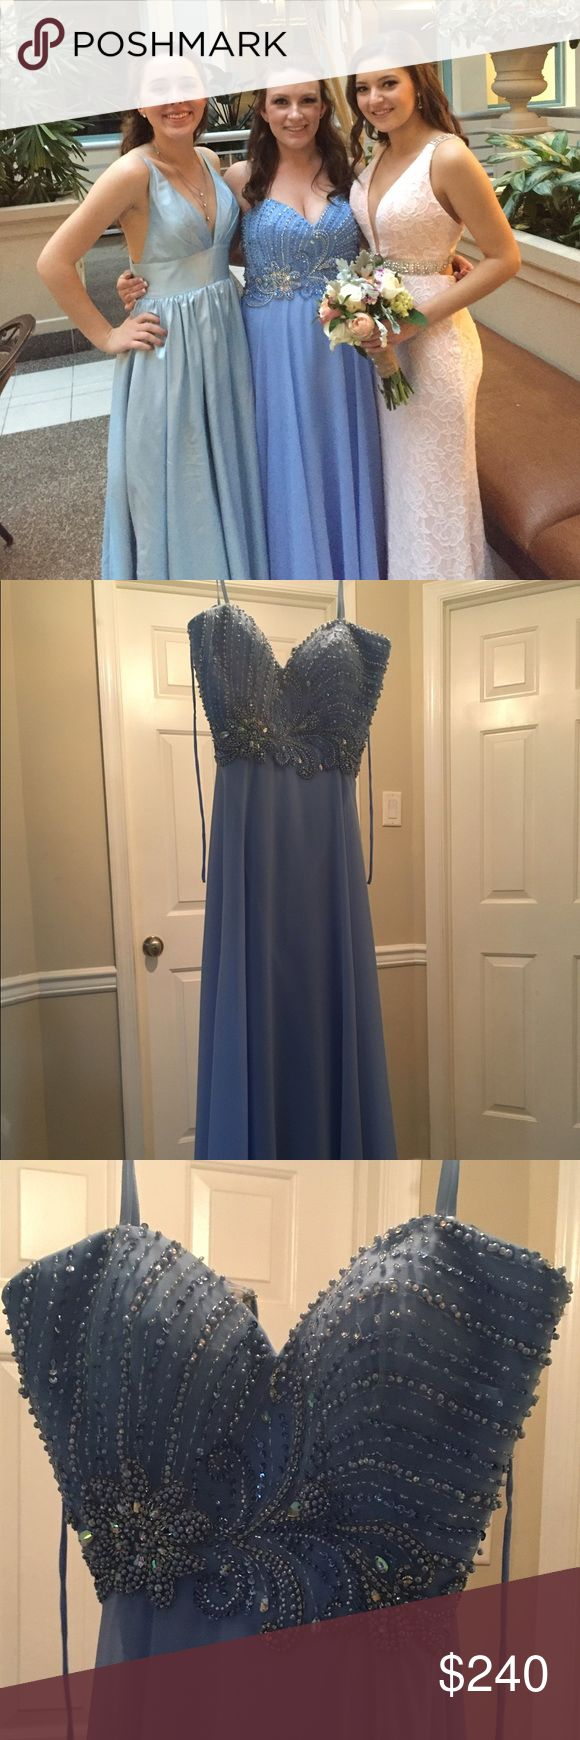 Periwinkle prom dress Size 14, altered to a size 13 and to fit someone 5'0 wearing 6 inch heels, and straps added Dresses Prom